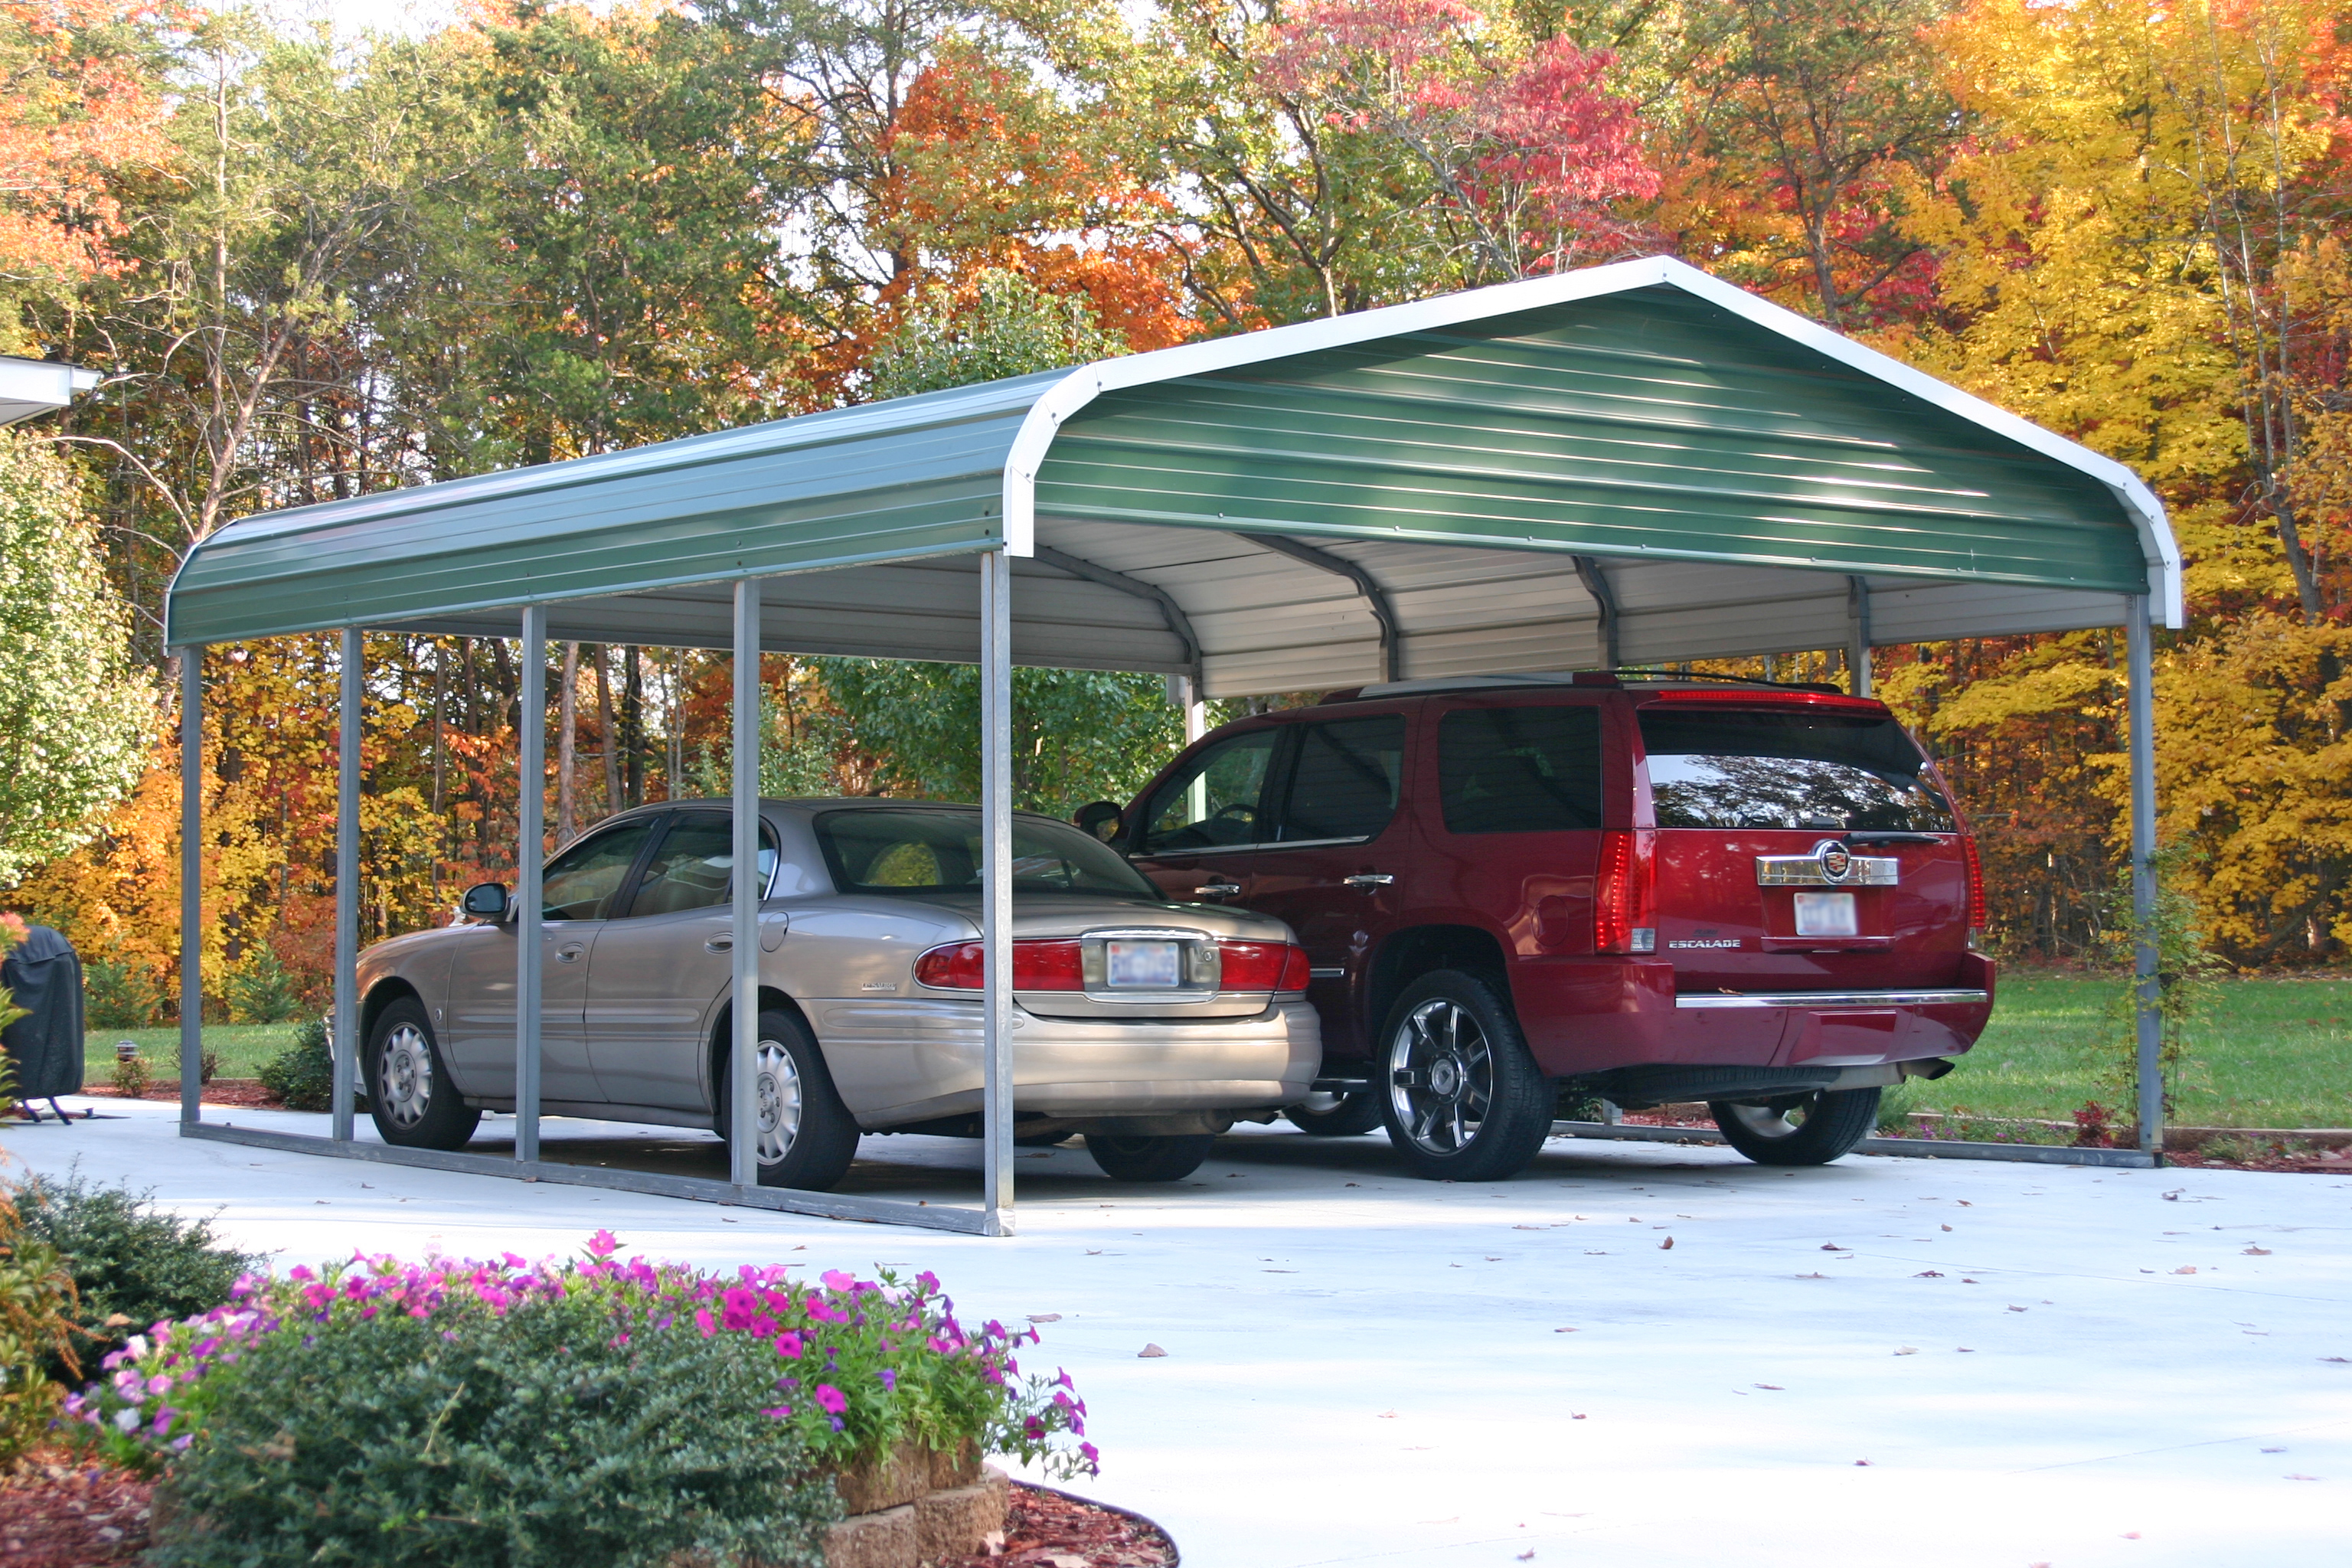 missouri carports mo carports for sale. Black Bedroom Furniture Sets. Home Design Ideas